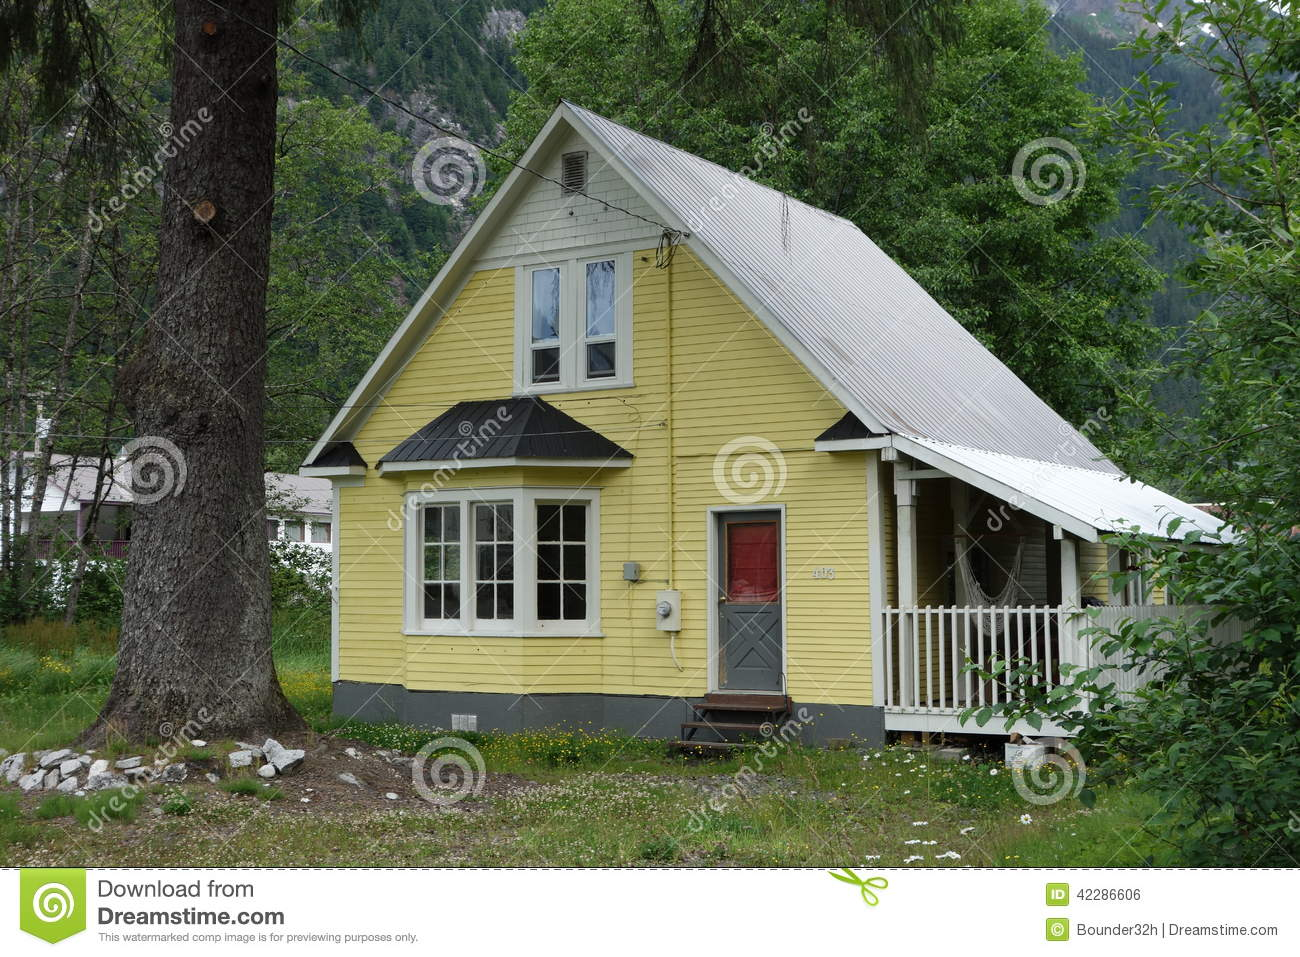 Simple House Image A Simple House At Stewart Canada Stock Photo Image Of